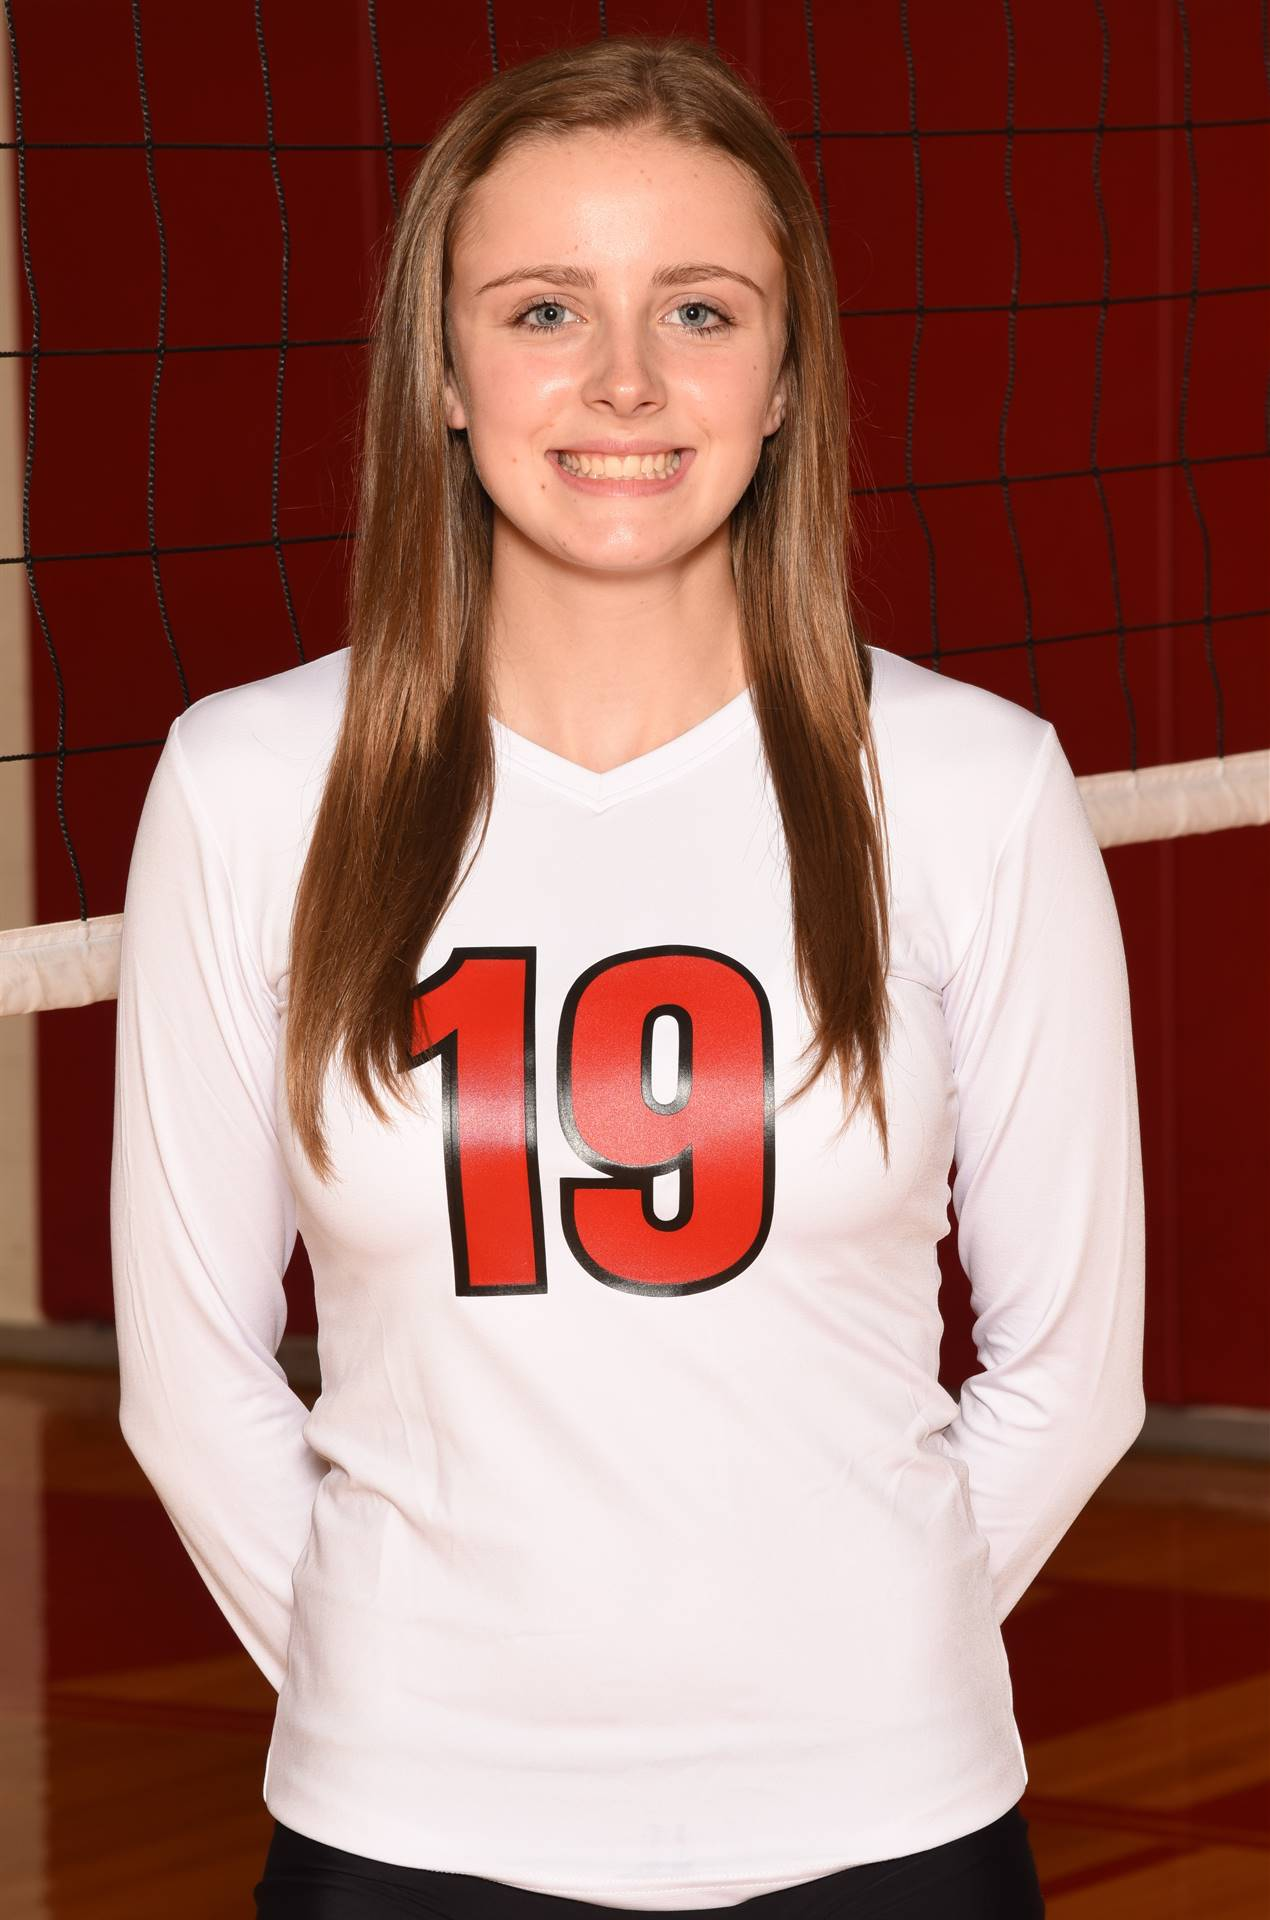 Senior Volleyball Picture - Megan Mock